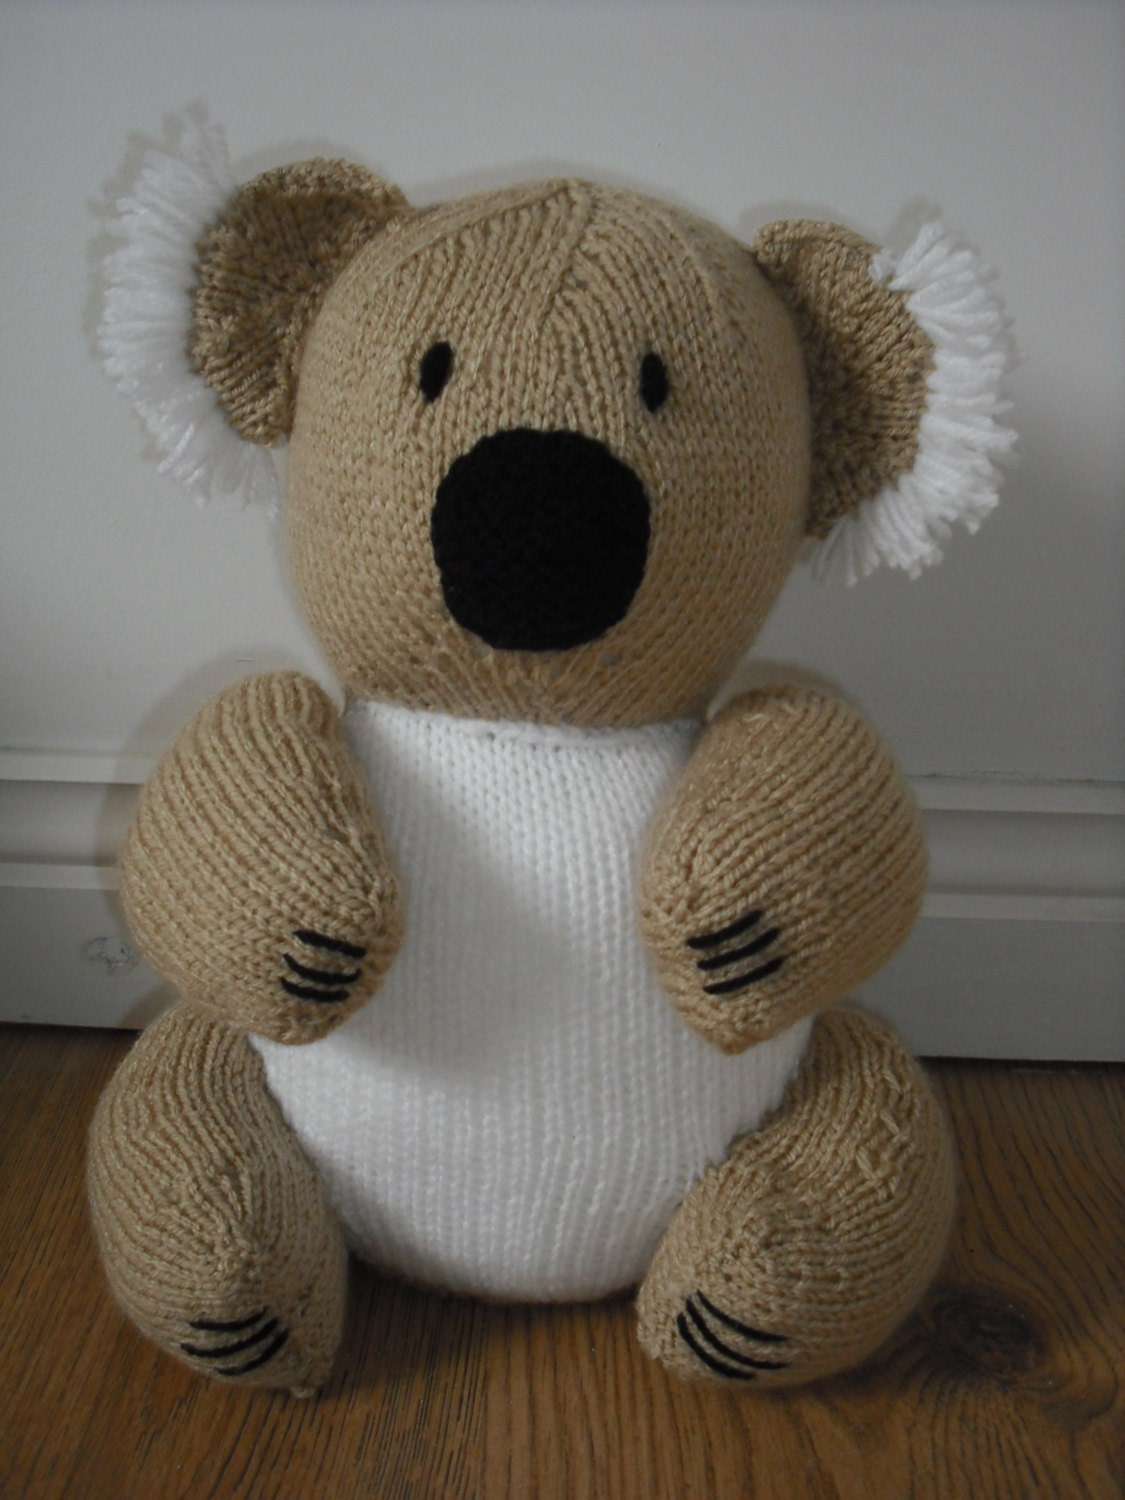 Koala Bear Hand Knitted Toy made from a Sarah Keen pattern.